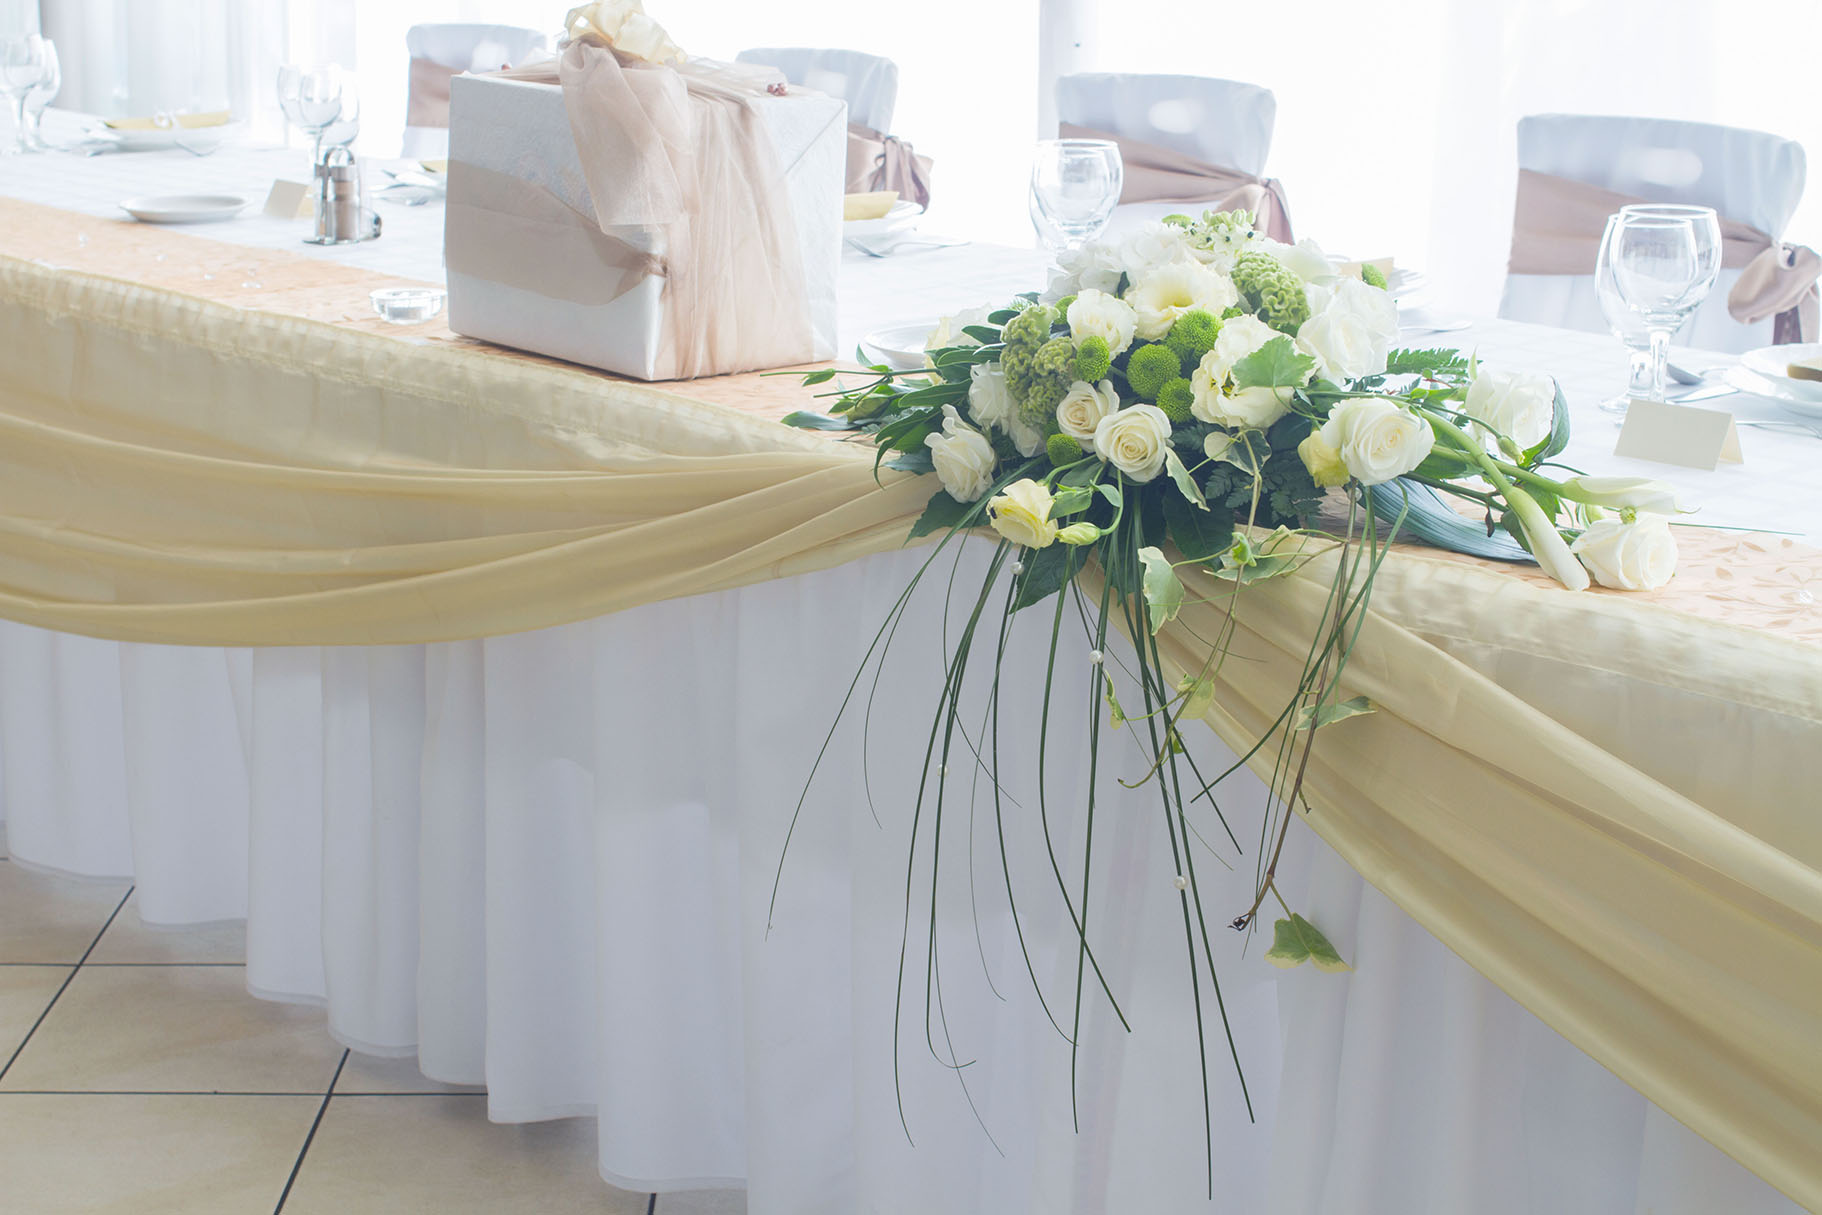 Tablecloths Napkins Are The Event Necessity For Comfortable Dining